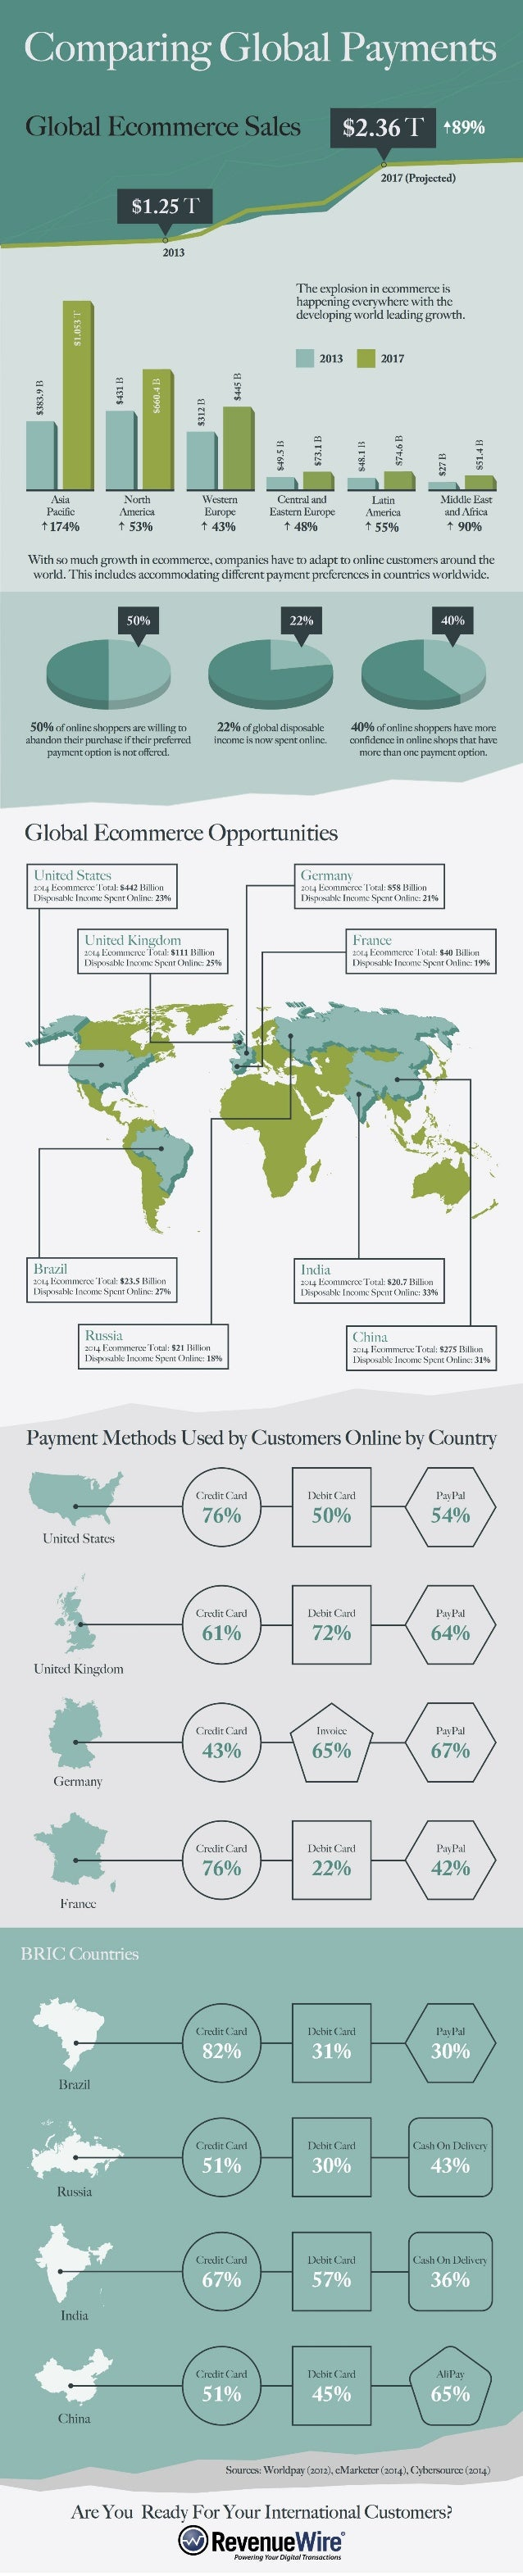 Comparing Global Payments